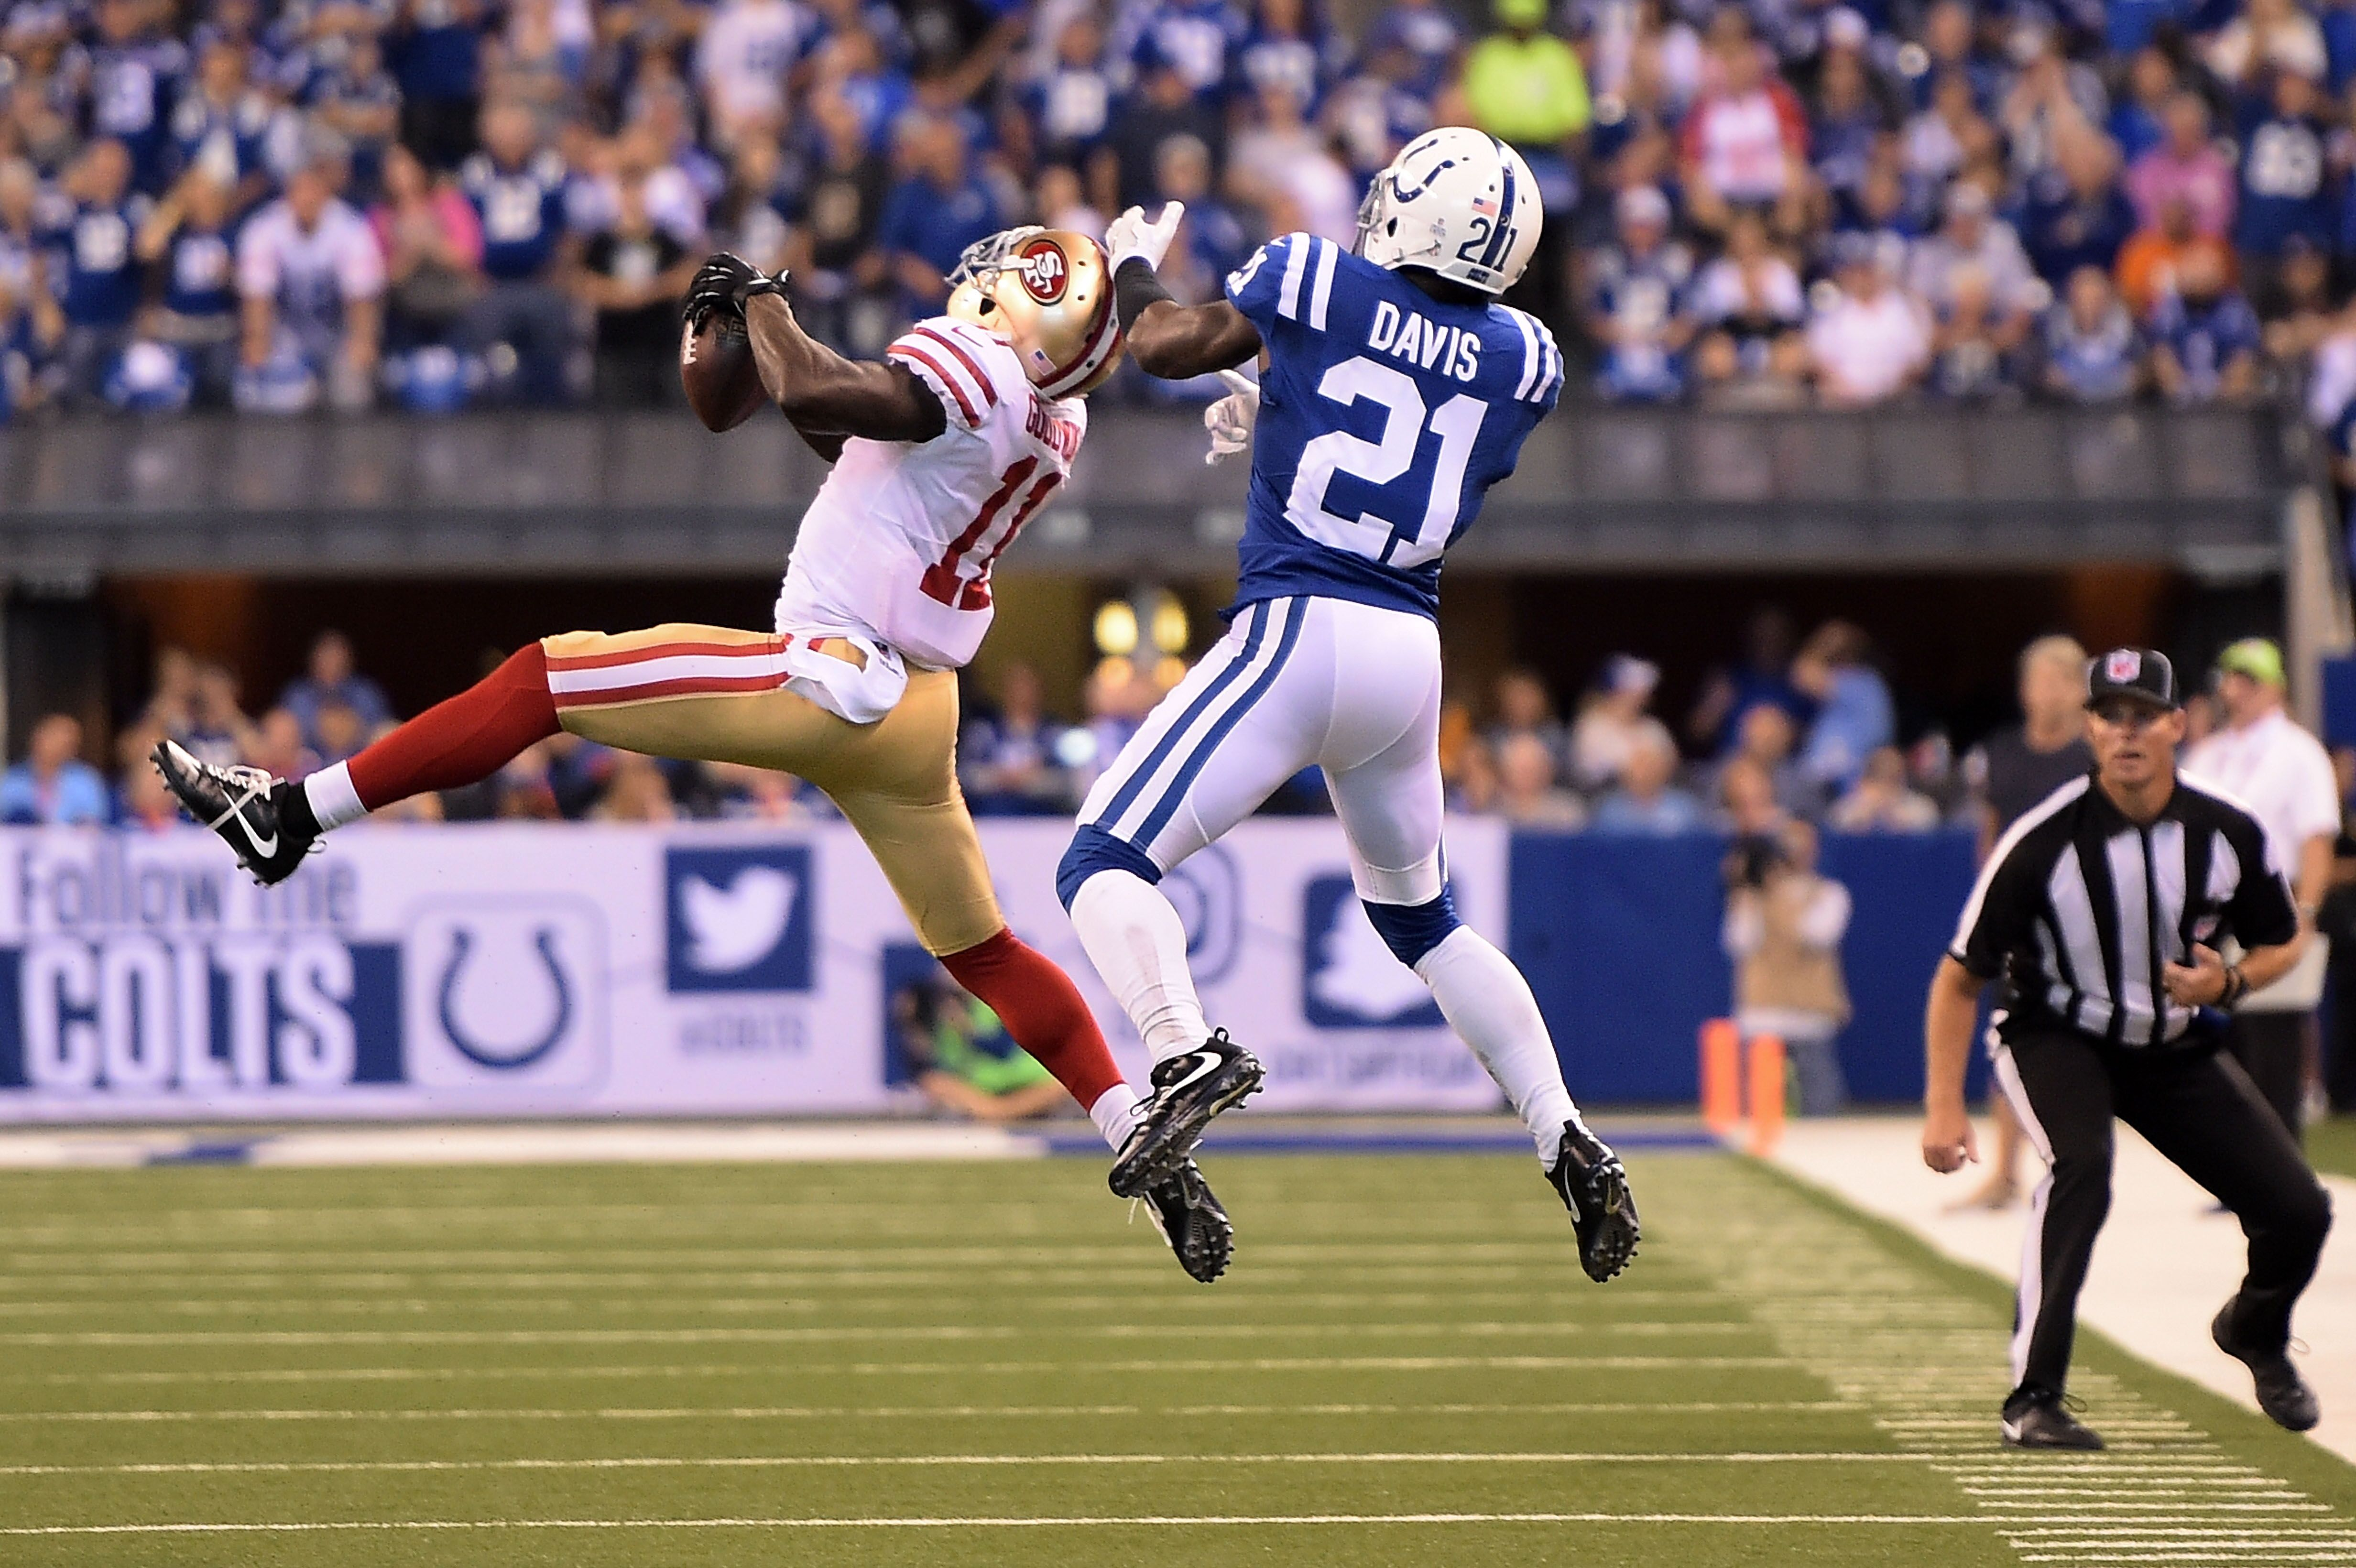 859059964-san-francisco-49ers-v-indianapolis-colts.jpg